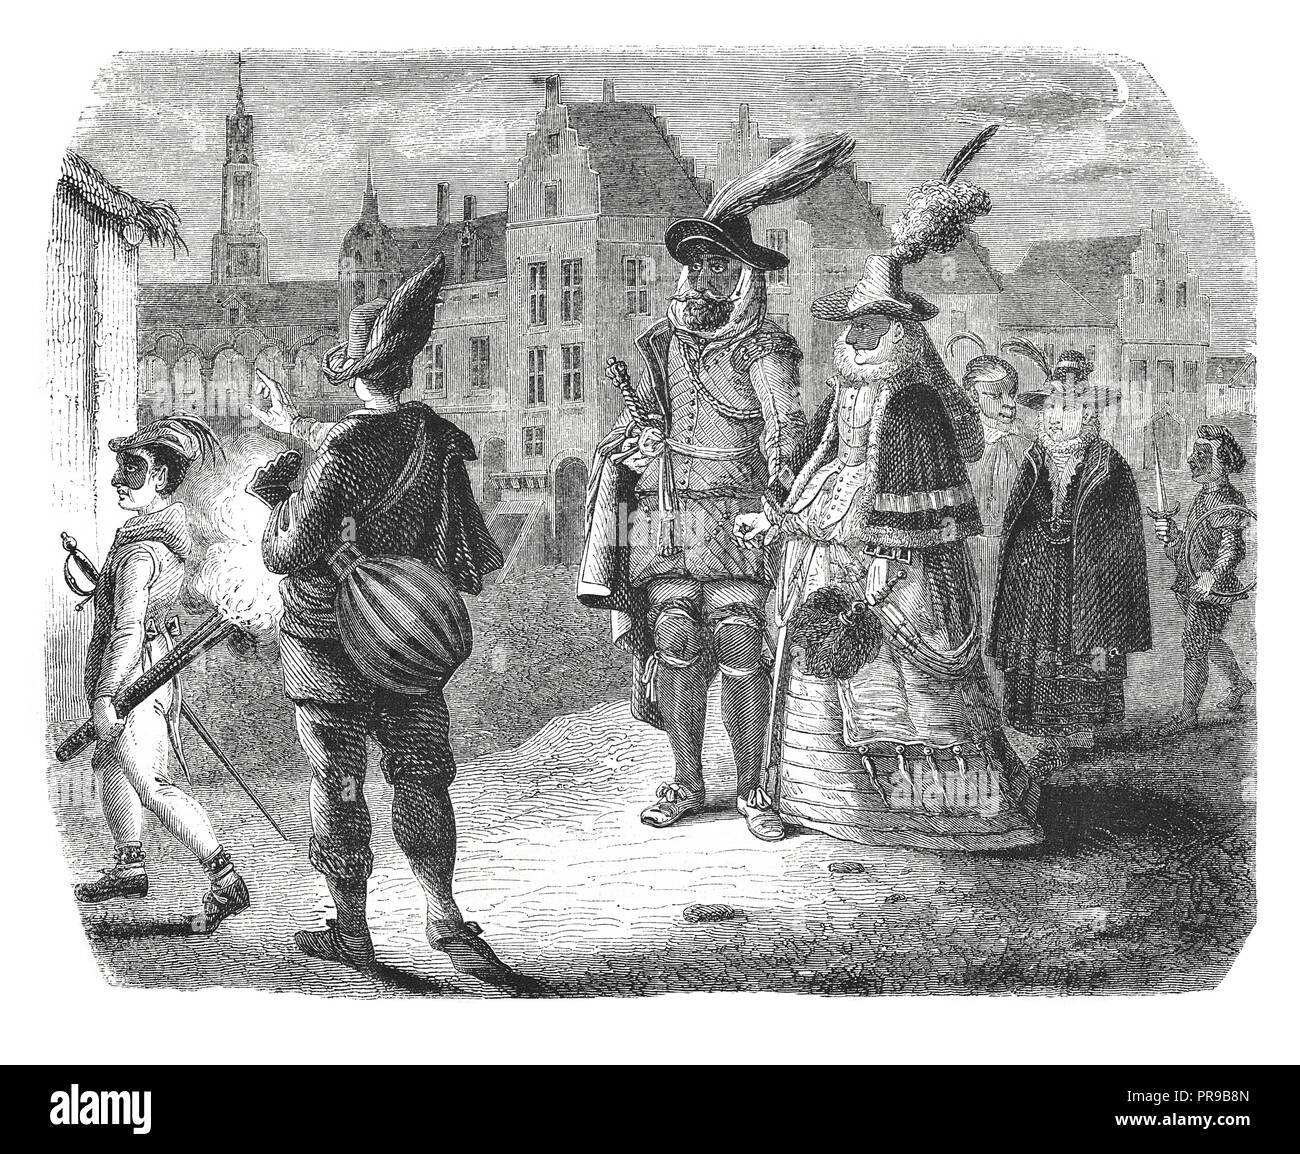 19th century illustration of Noble family in the evening in a city of the Netherlands (c.16th century). Original artwork published in Le magasin Pitto - Stock Image